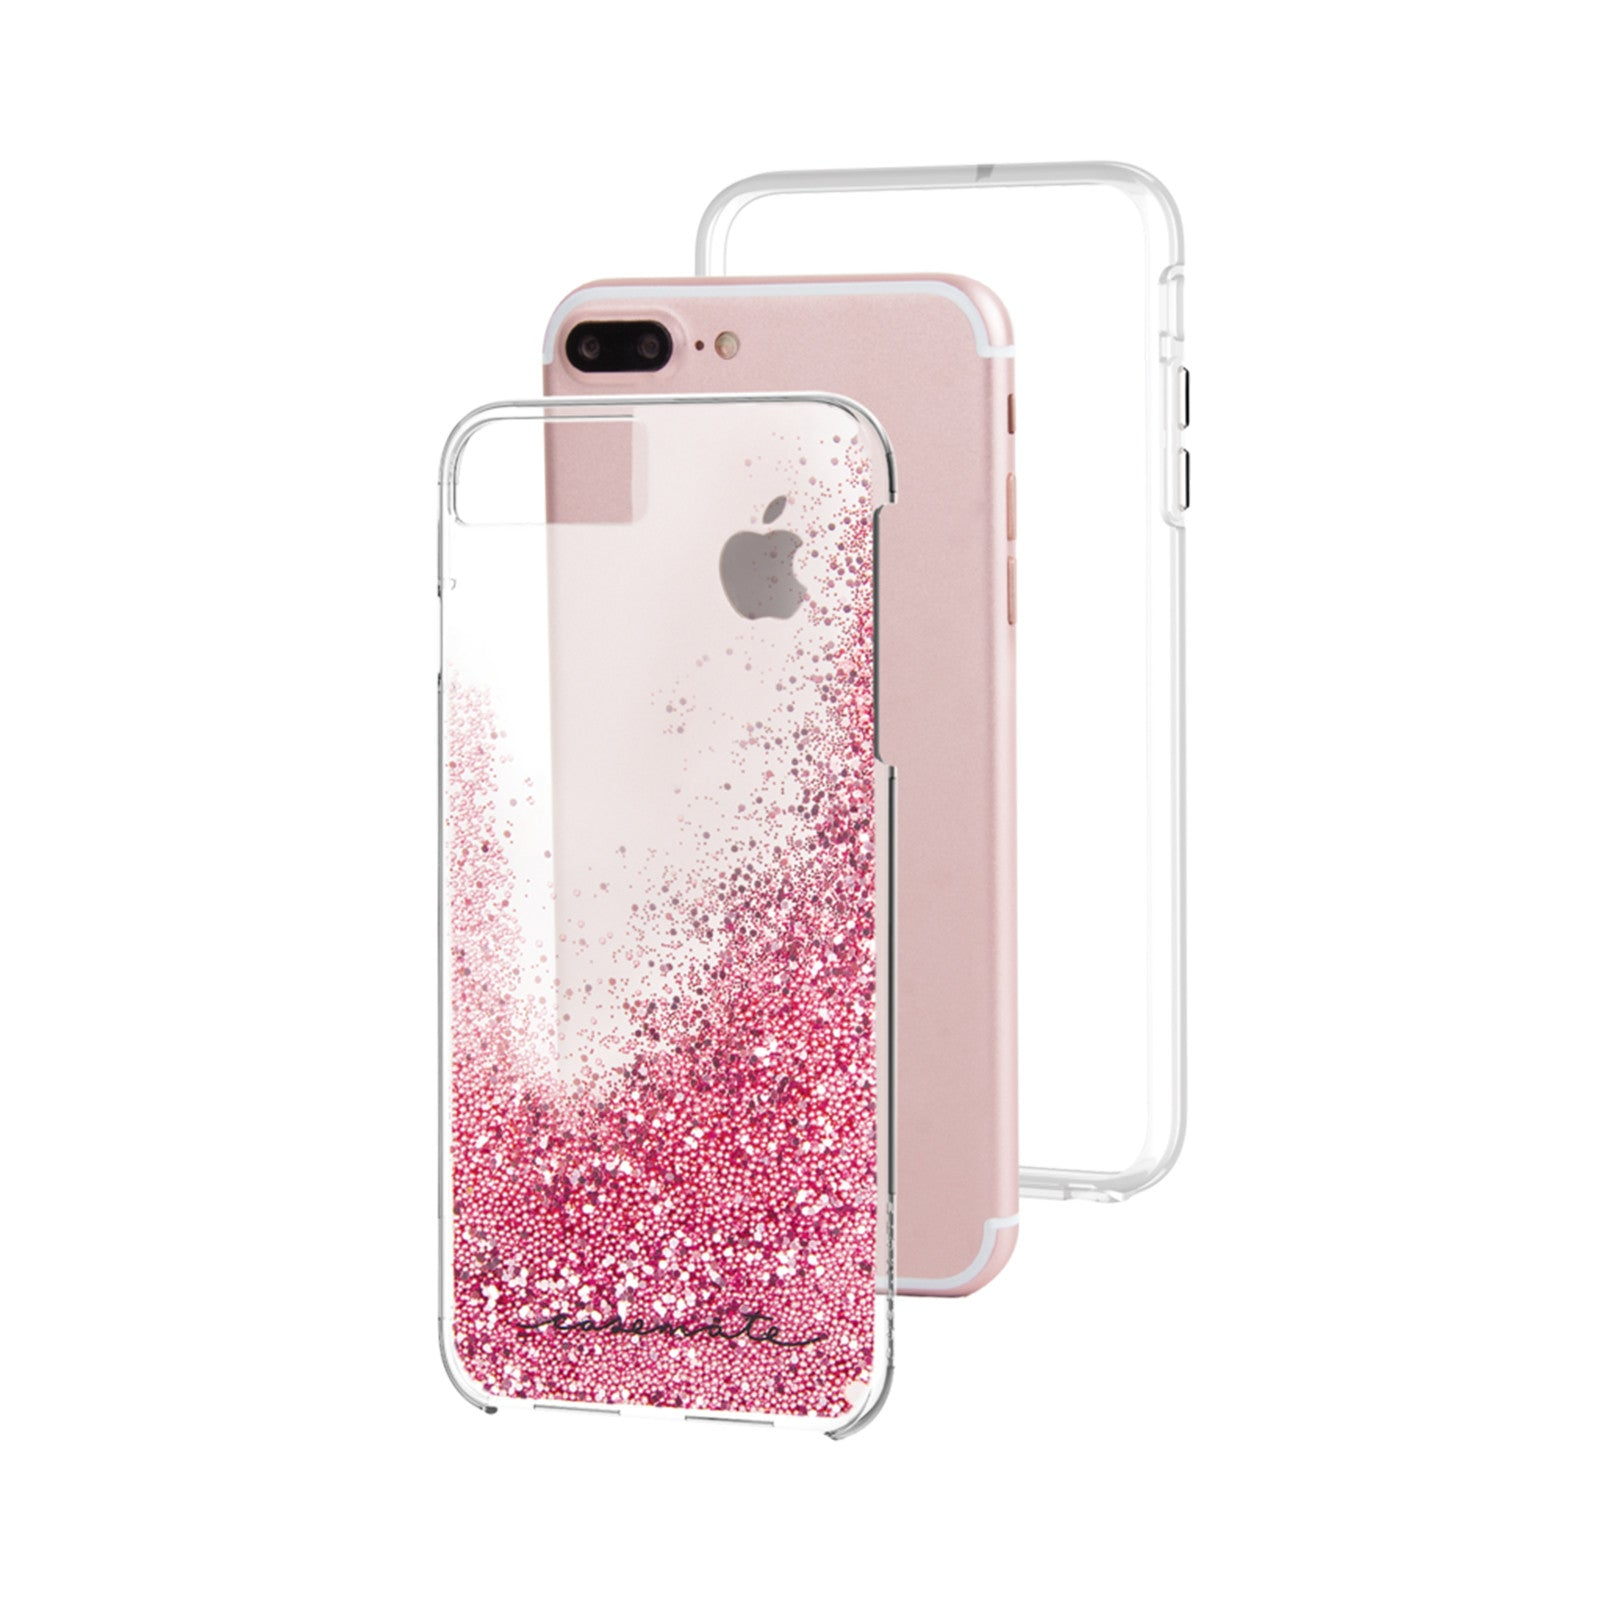 new style 5131f 322ed Case Mate Naked Tough Waterfall For iPhone 7/8 Plus - Rose Gold